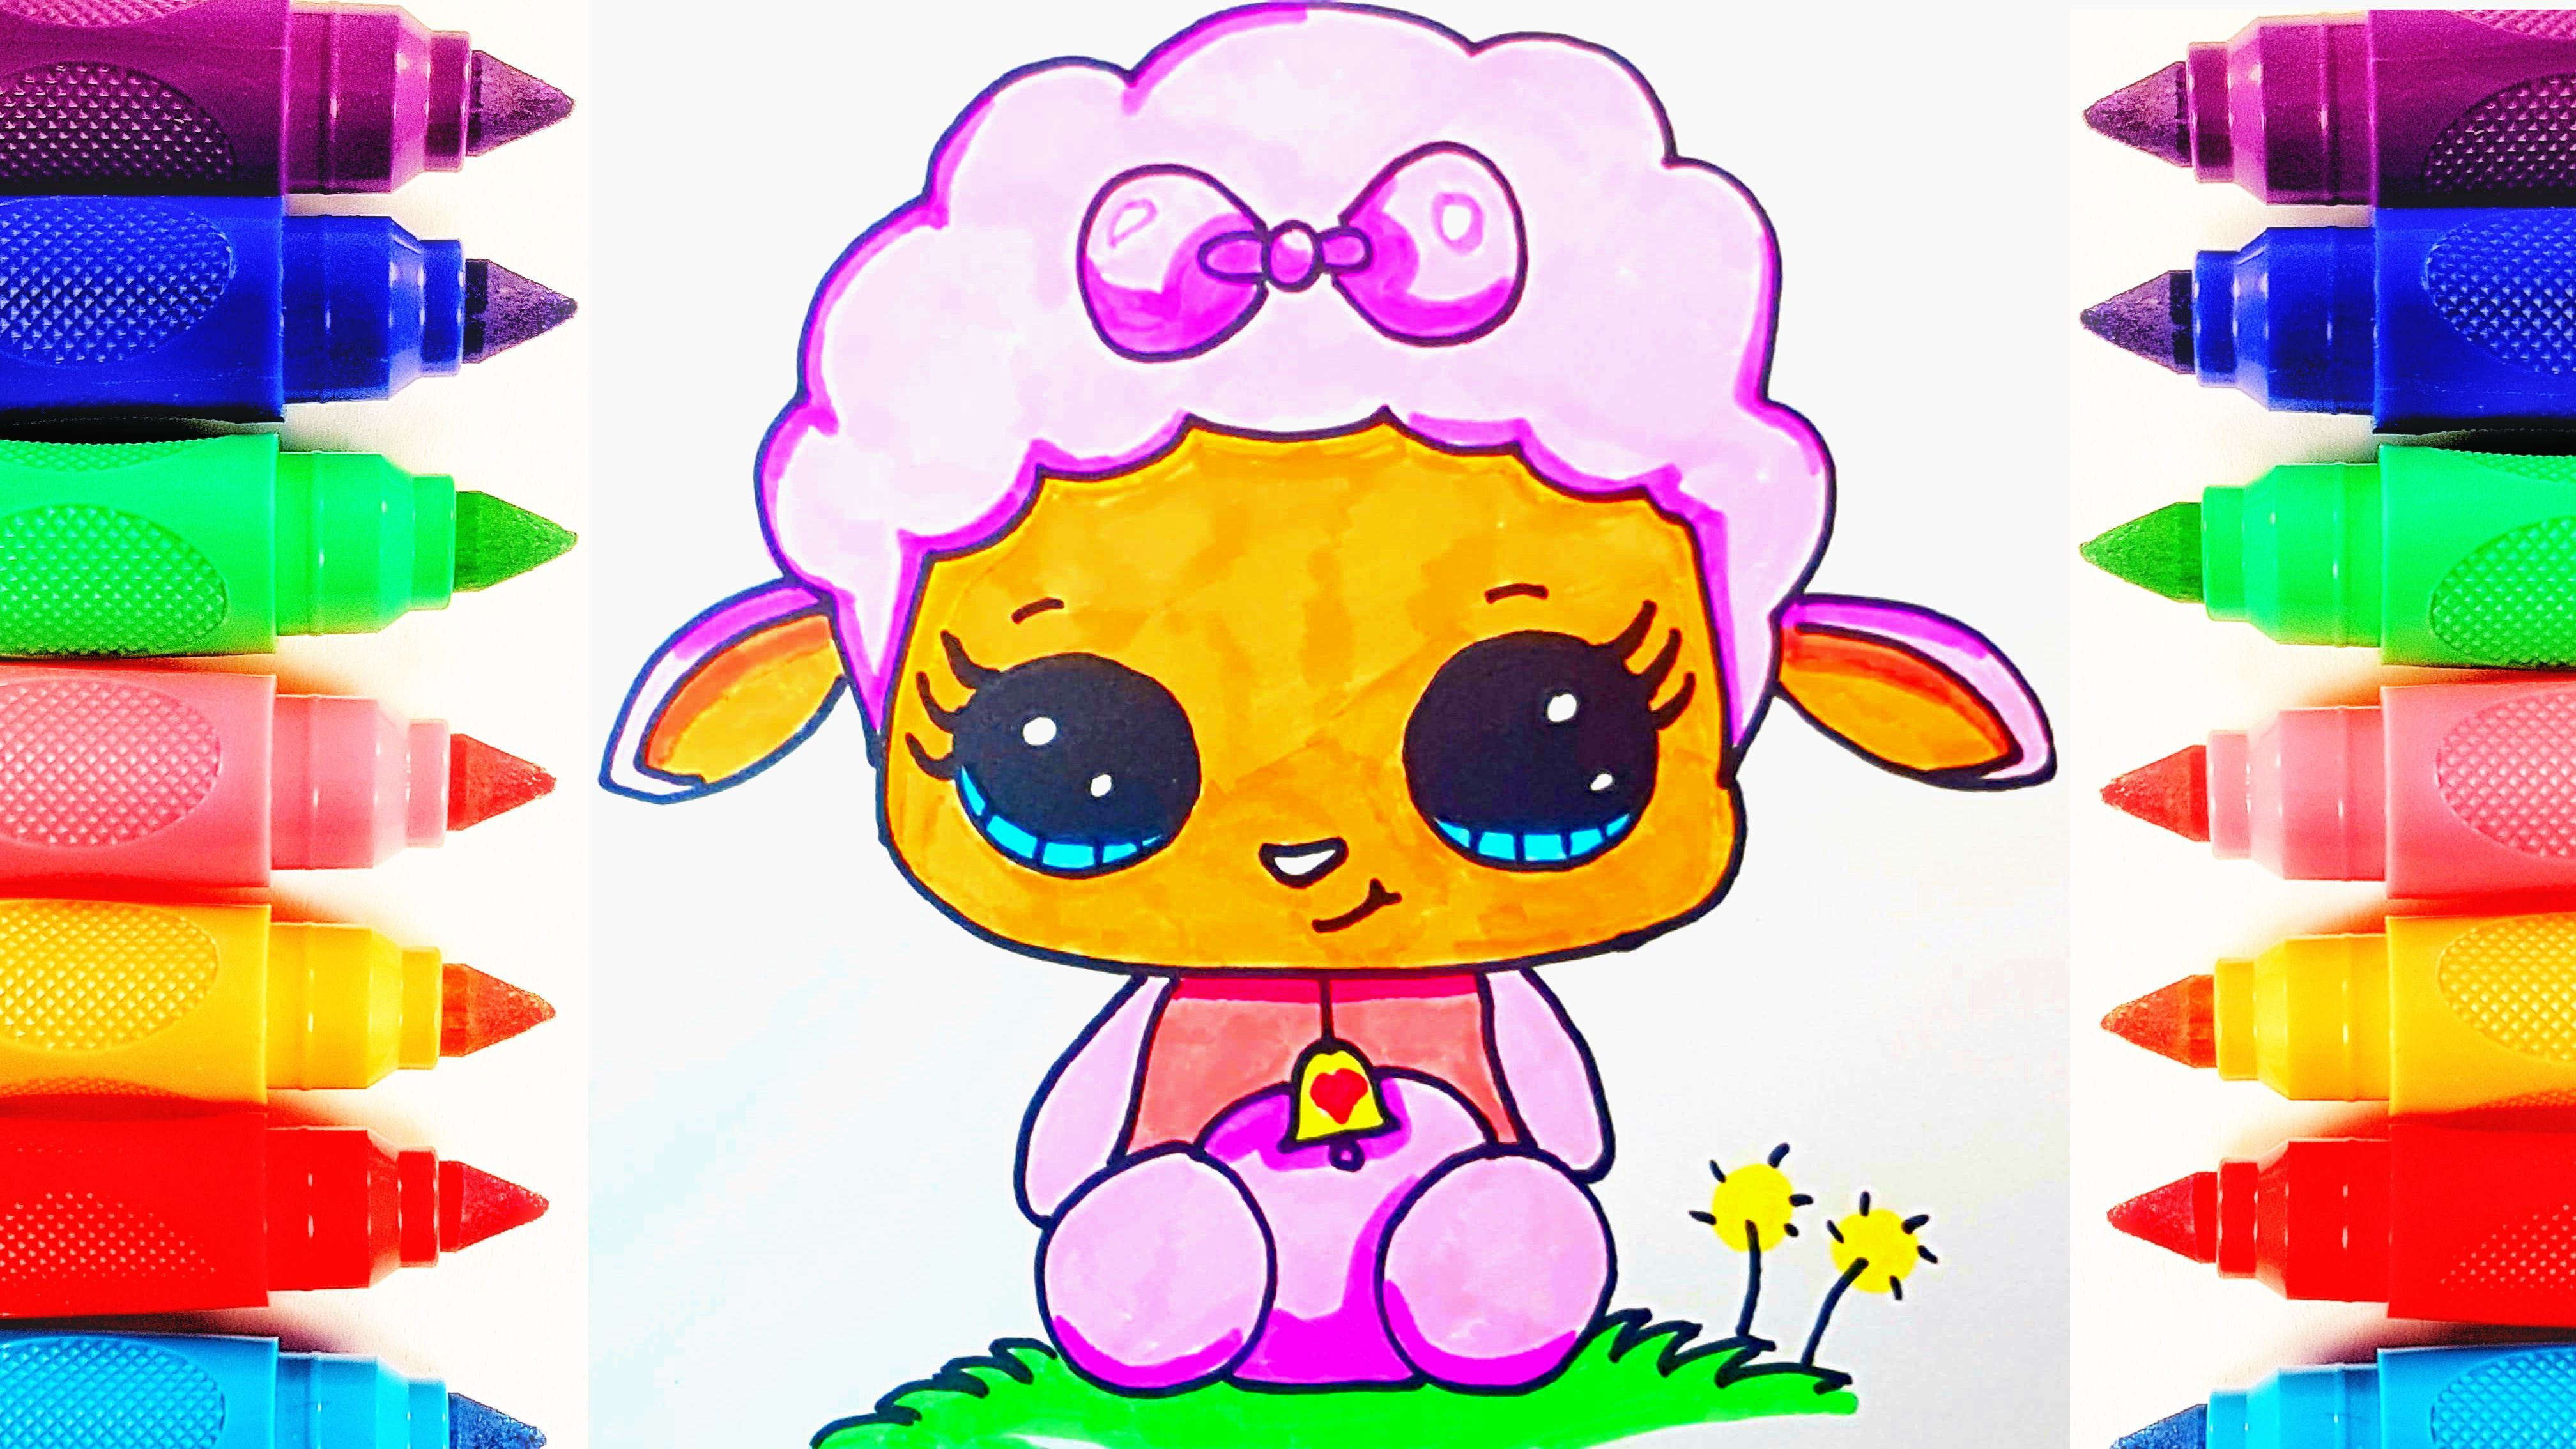 Aww This Is Cute Lamb How To Draw Cute Lamb For Kids Drawing And Coloring Pages Subscribe And Share Rainbow Wonderland Cartoon Lamb Cute Lamb Cute Drawings